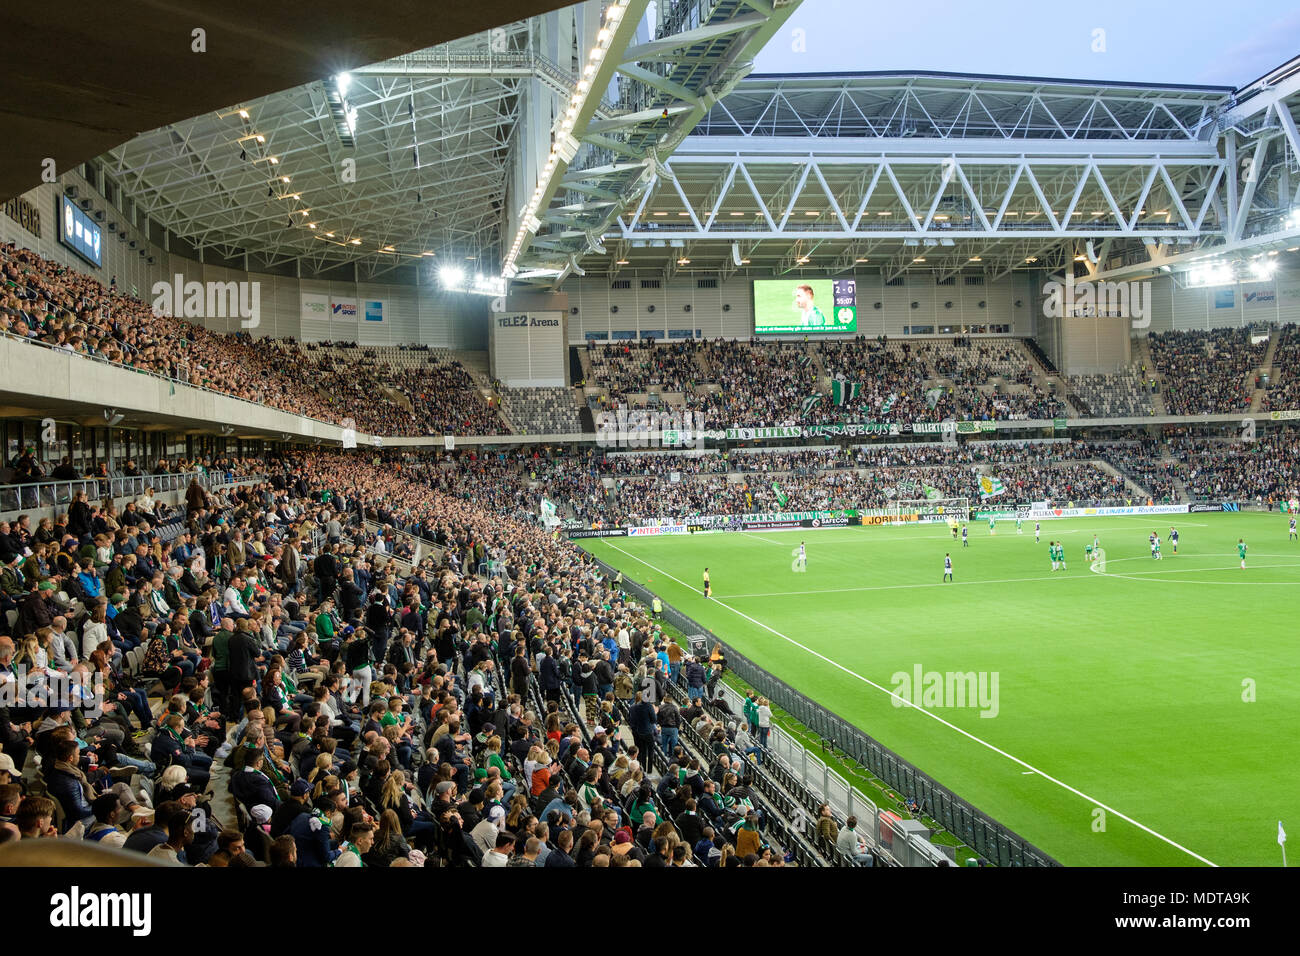 Tele2 arena is a multi-purpose stadium in Stockholm seating 32000 during football games is the home of Hammarby IF and Djurgårdens IF. - Stock Image